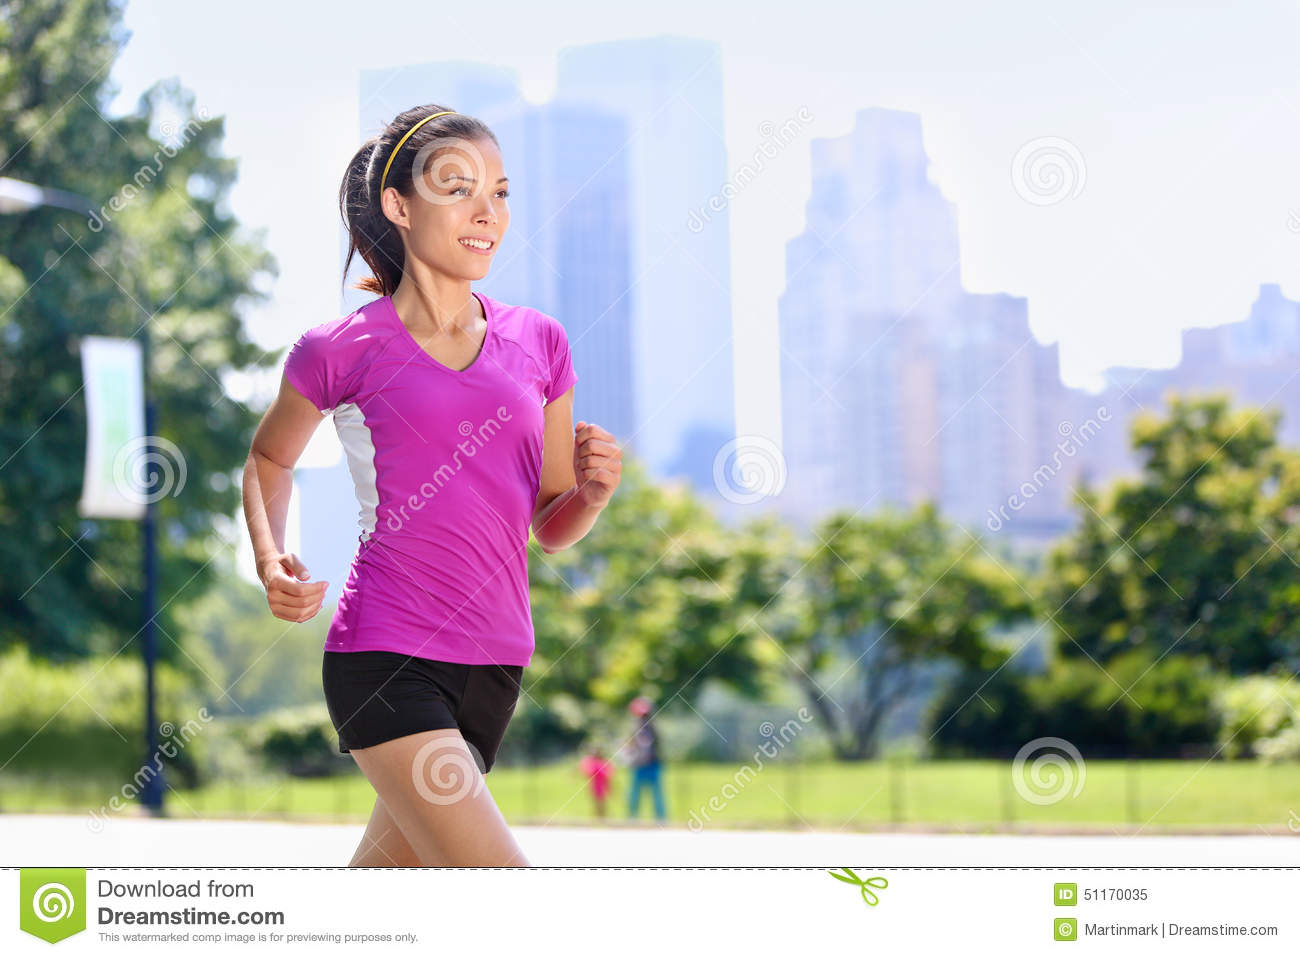 Run woman exercising in Central Park New York City